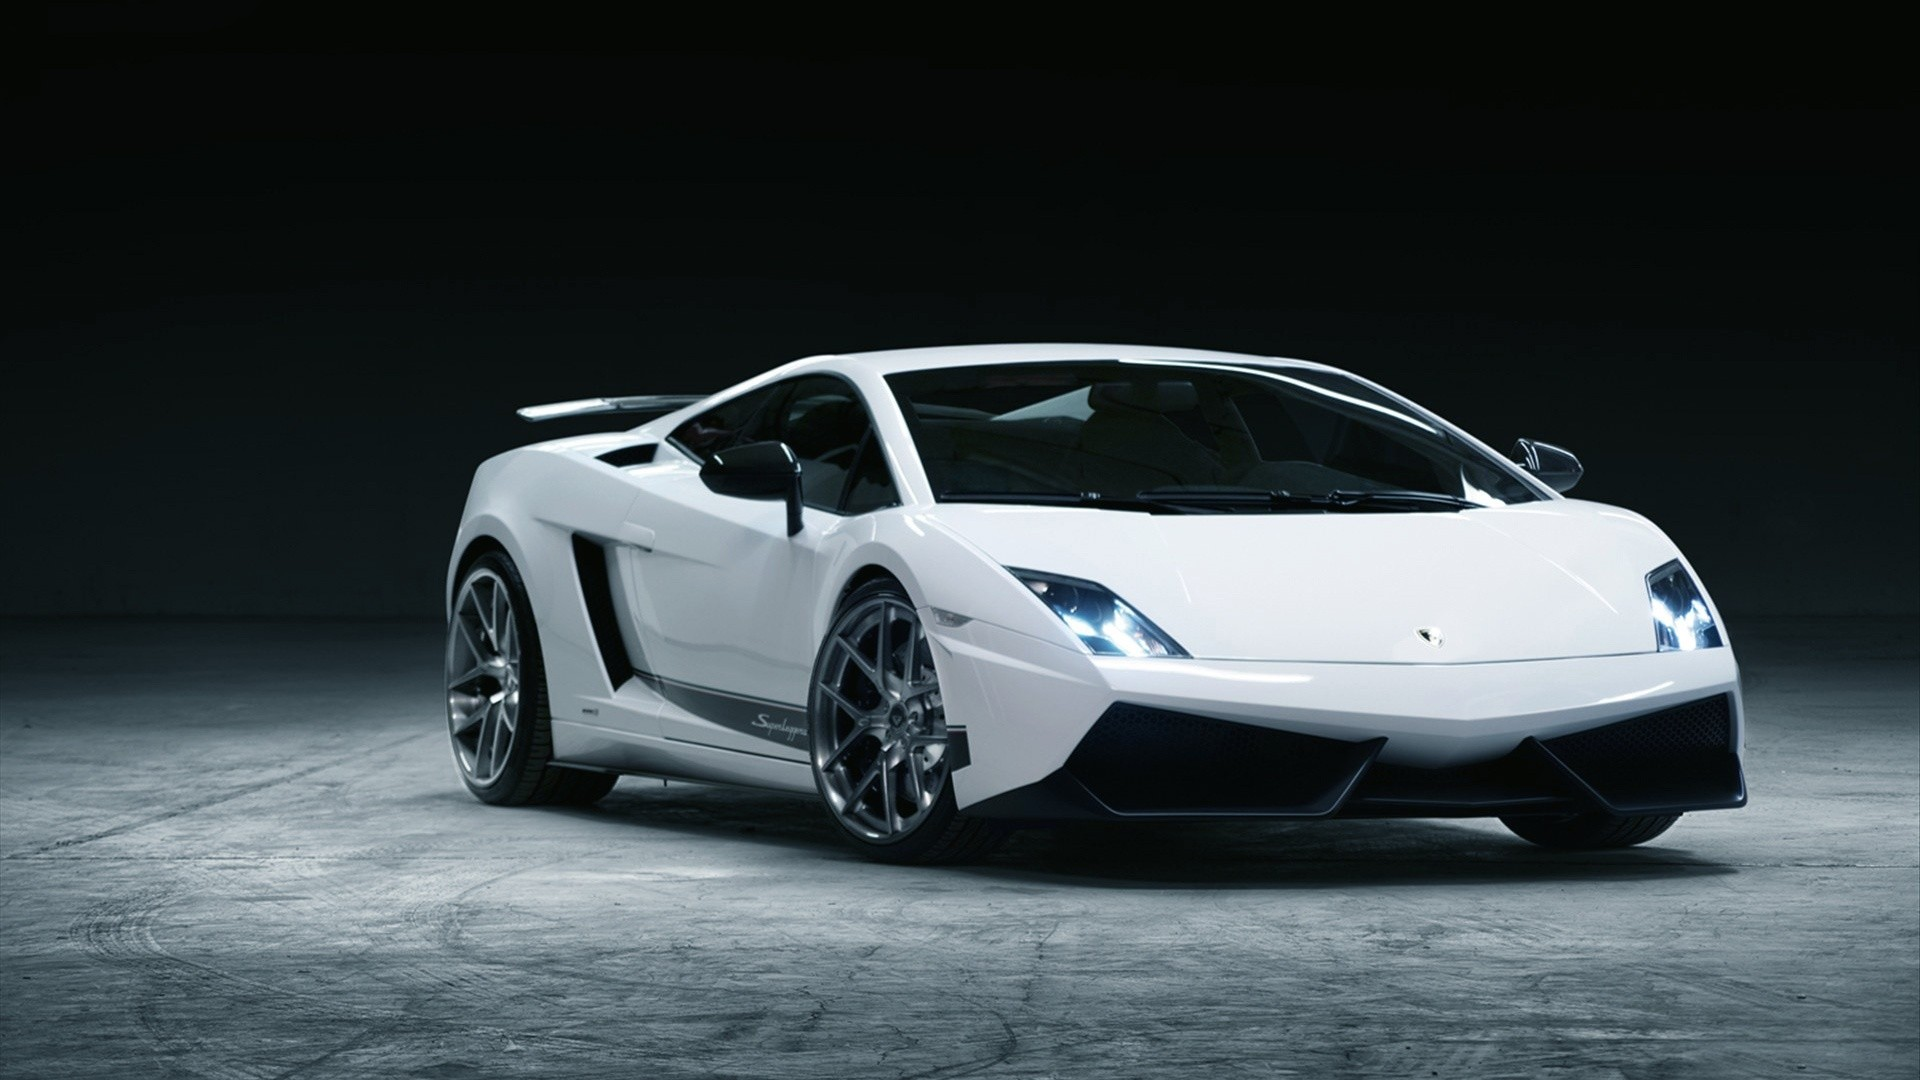 New Lamborghini Gallardo 2013 HD Wallpaper of Car   hdwallpaper2013 1920x1080